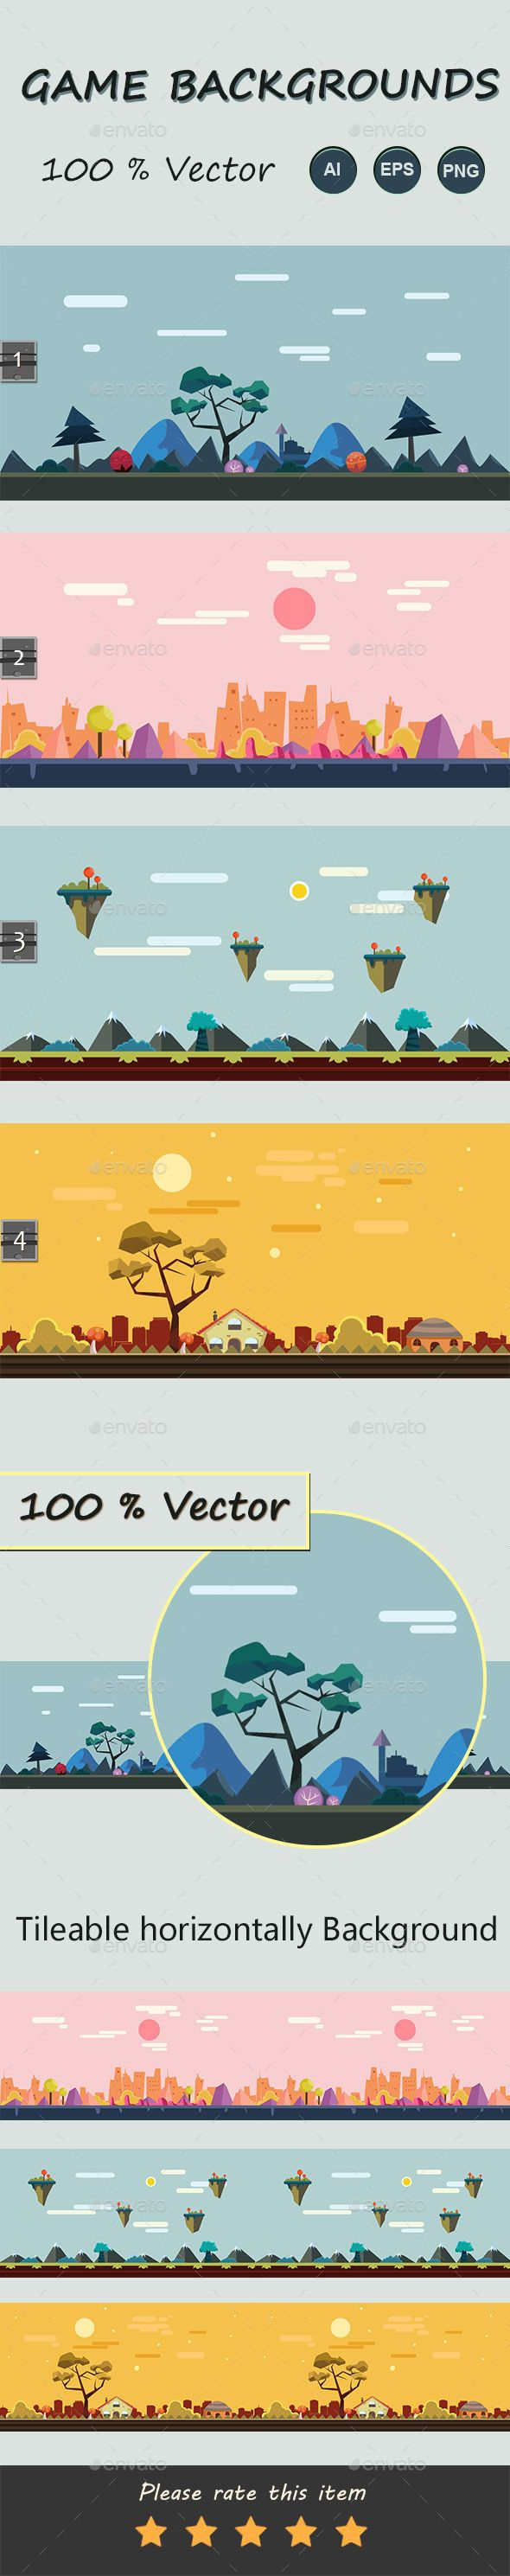 Game Backgrounds Download here: https://graphicriver.net/item/game-backgrounds/11551926?ref=KlitVogli